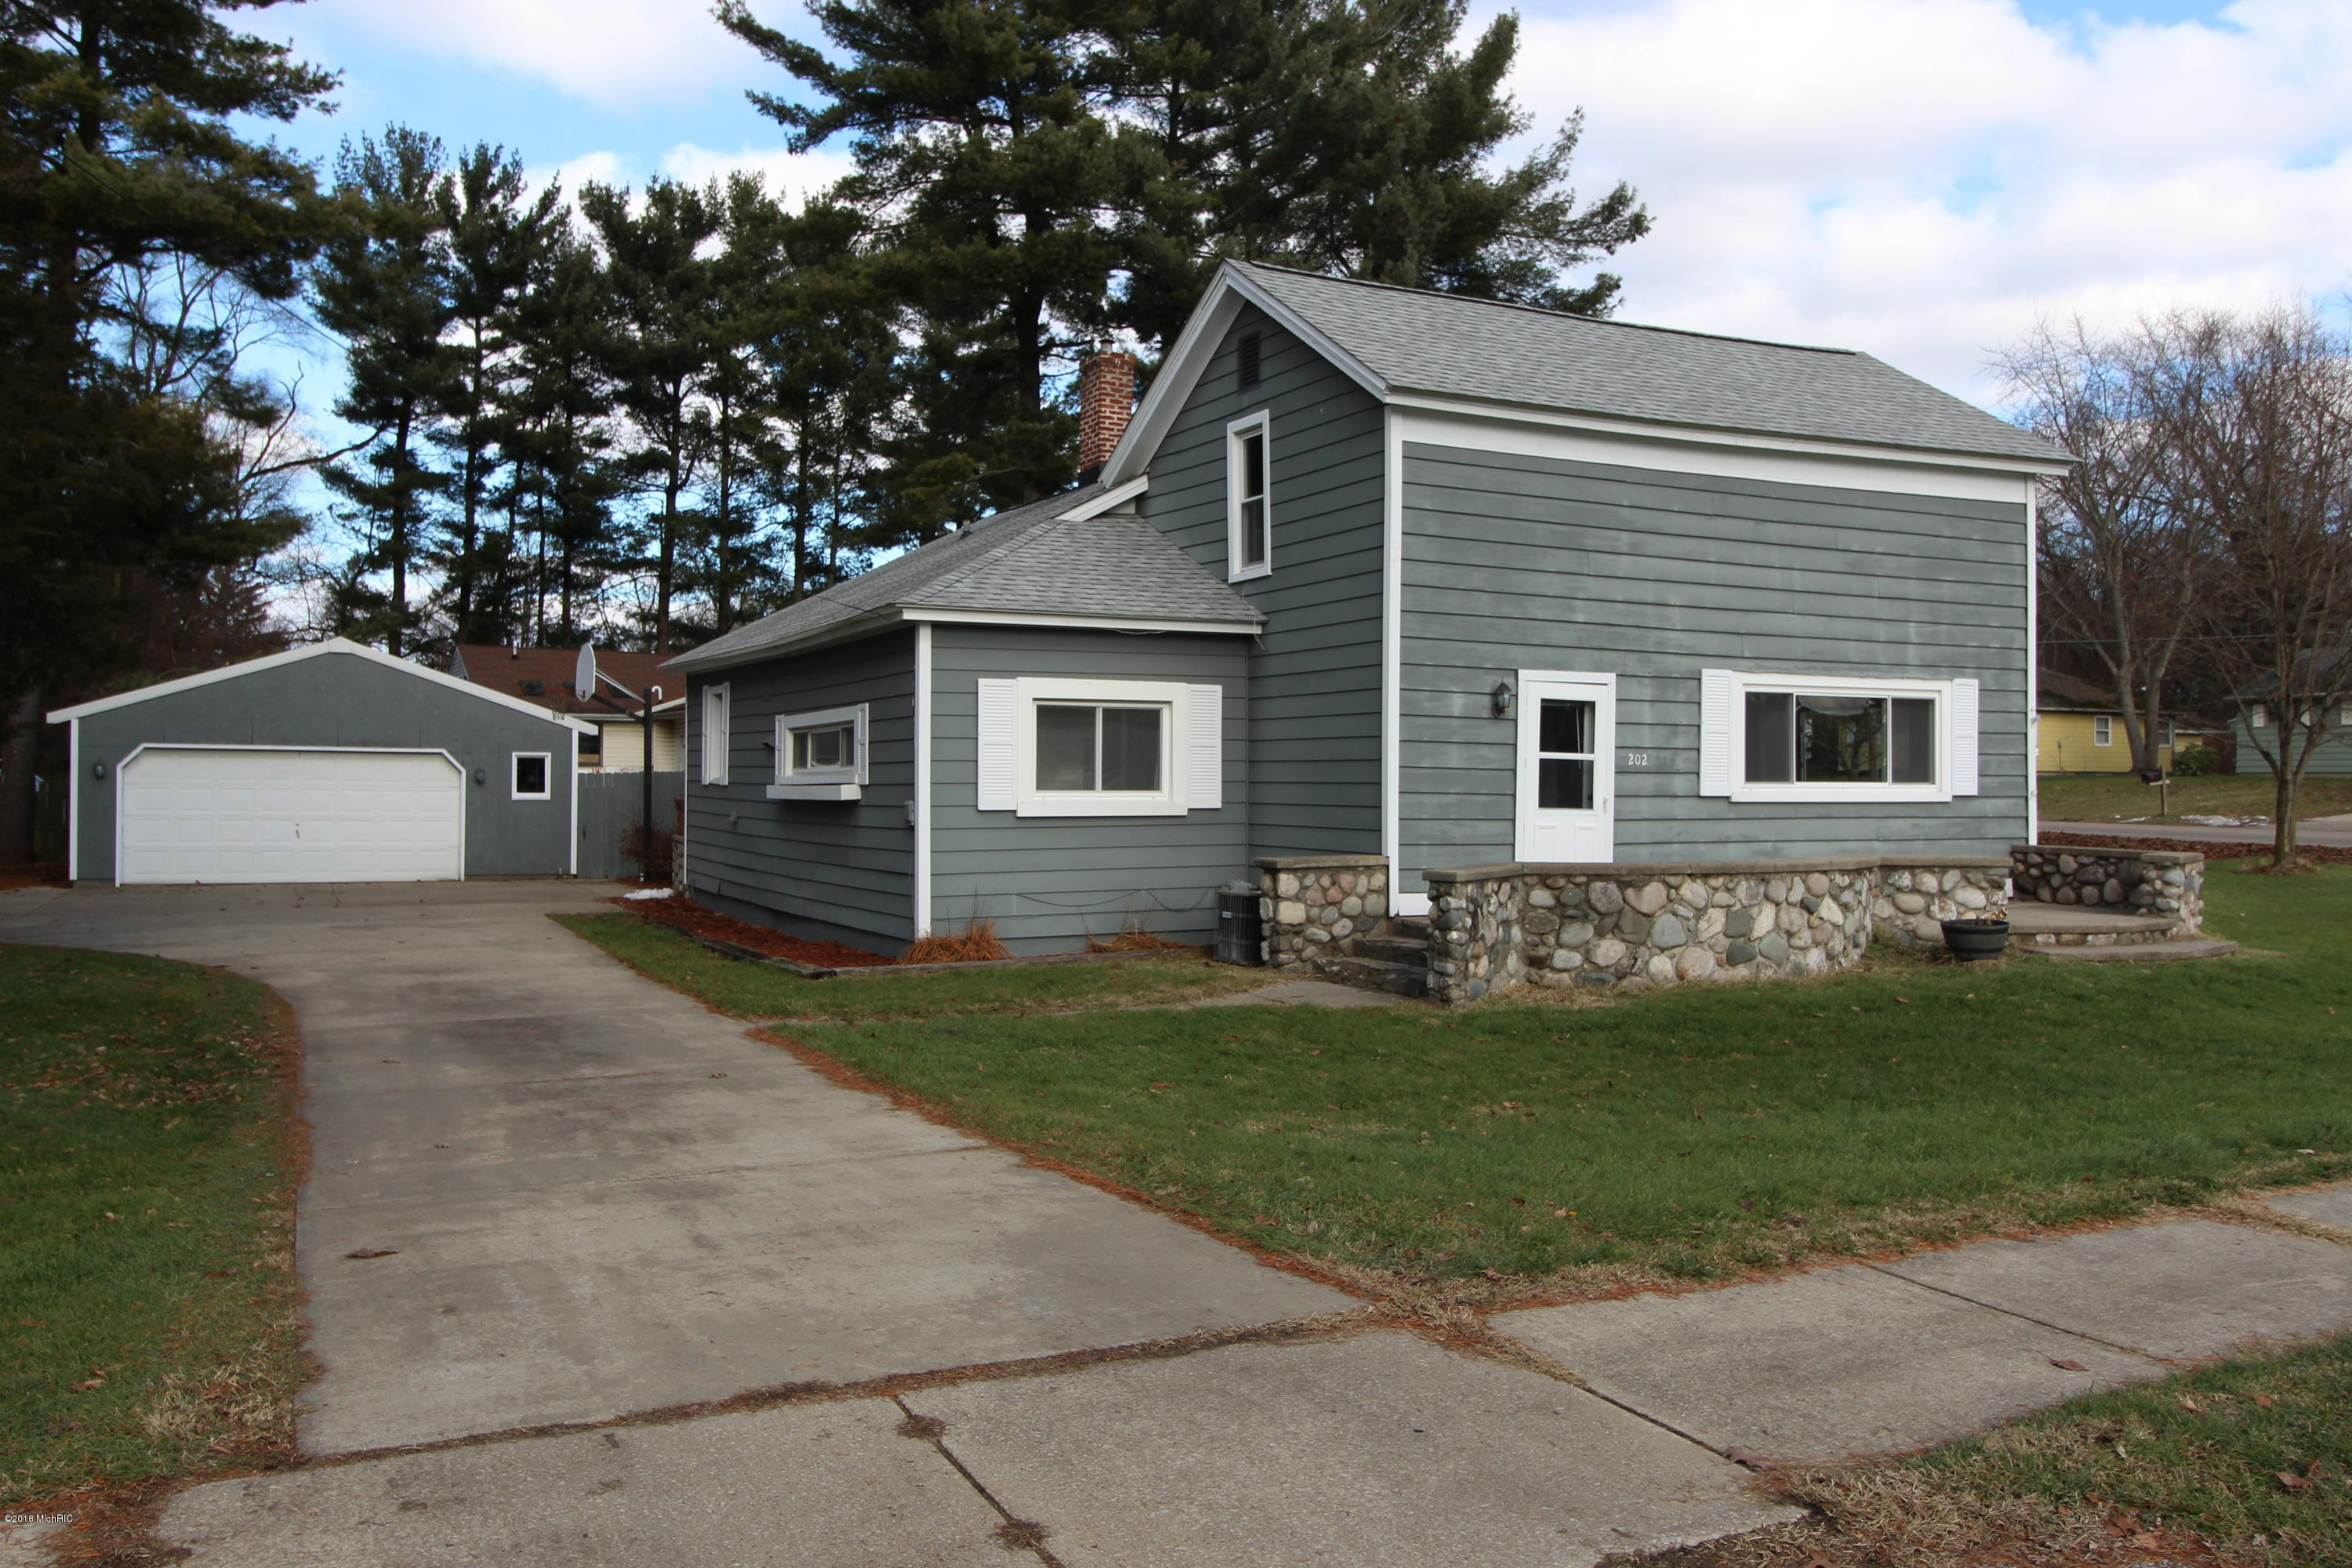 Photo for 202 W North Street, Paw Paw, MI 49079 (MLS # 18057393)